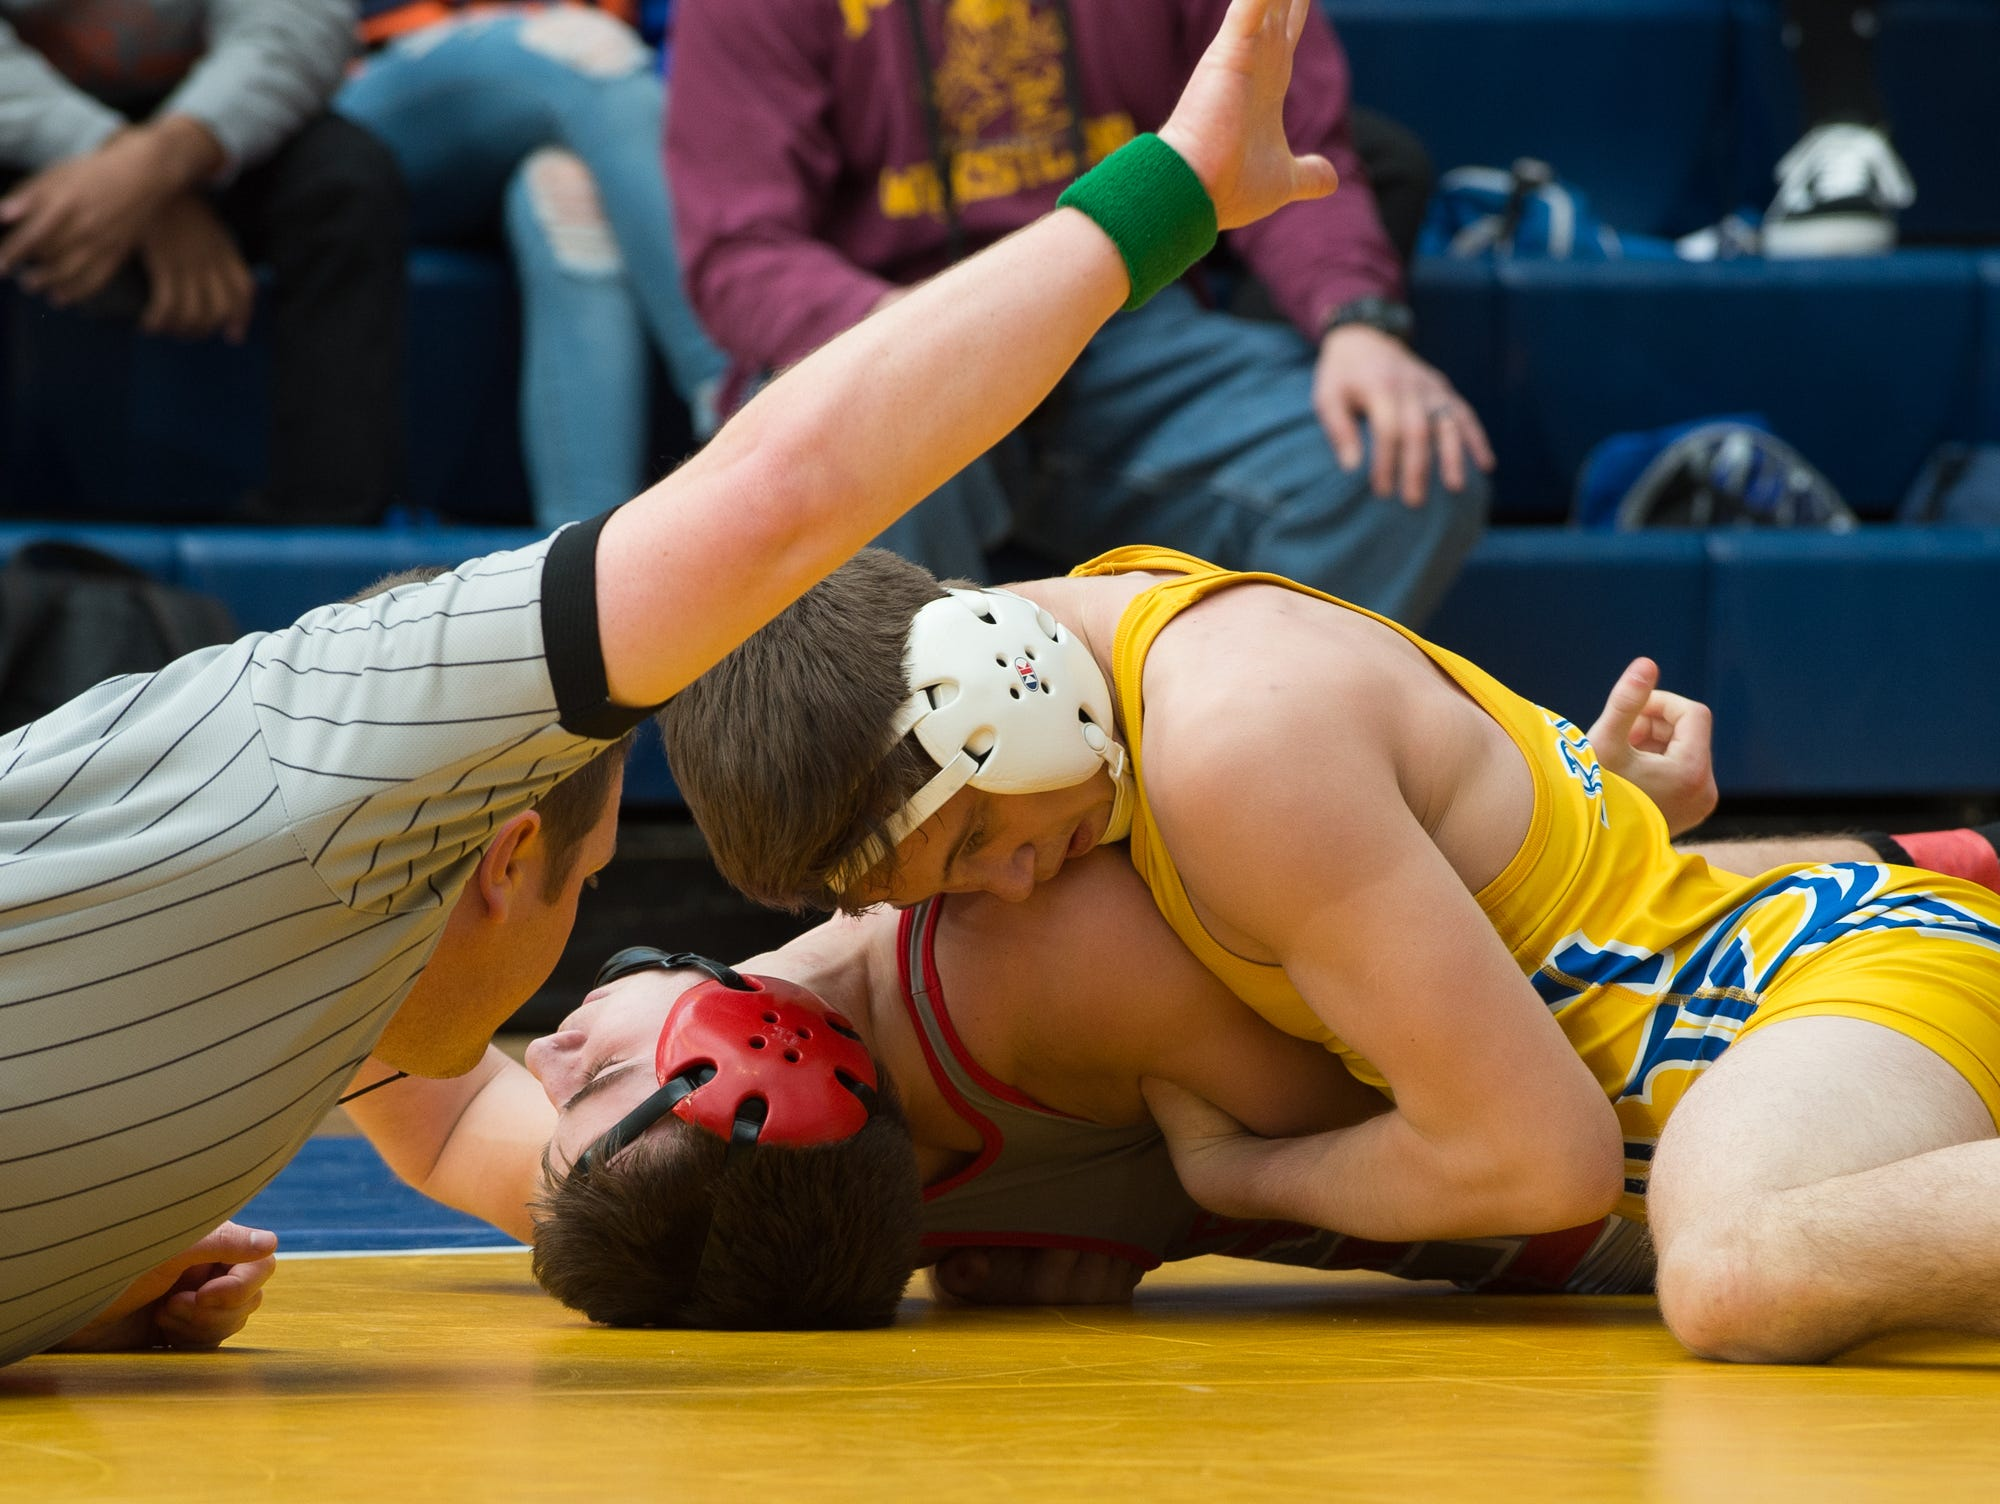 Caesar Rodney's Jackson Dean tries for a pin on Smyrna's Greg Baum in the 132 pound championship match at the Henlopen Conference wrestling tournament at Sussex Central High School.